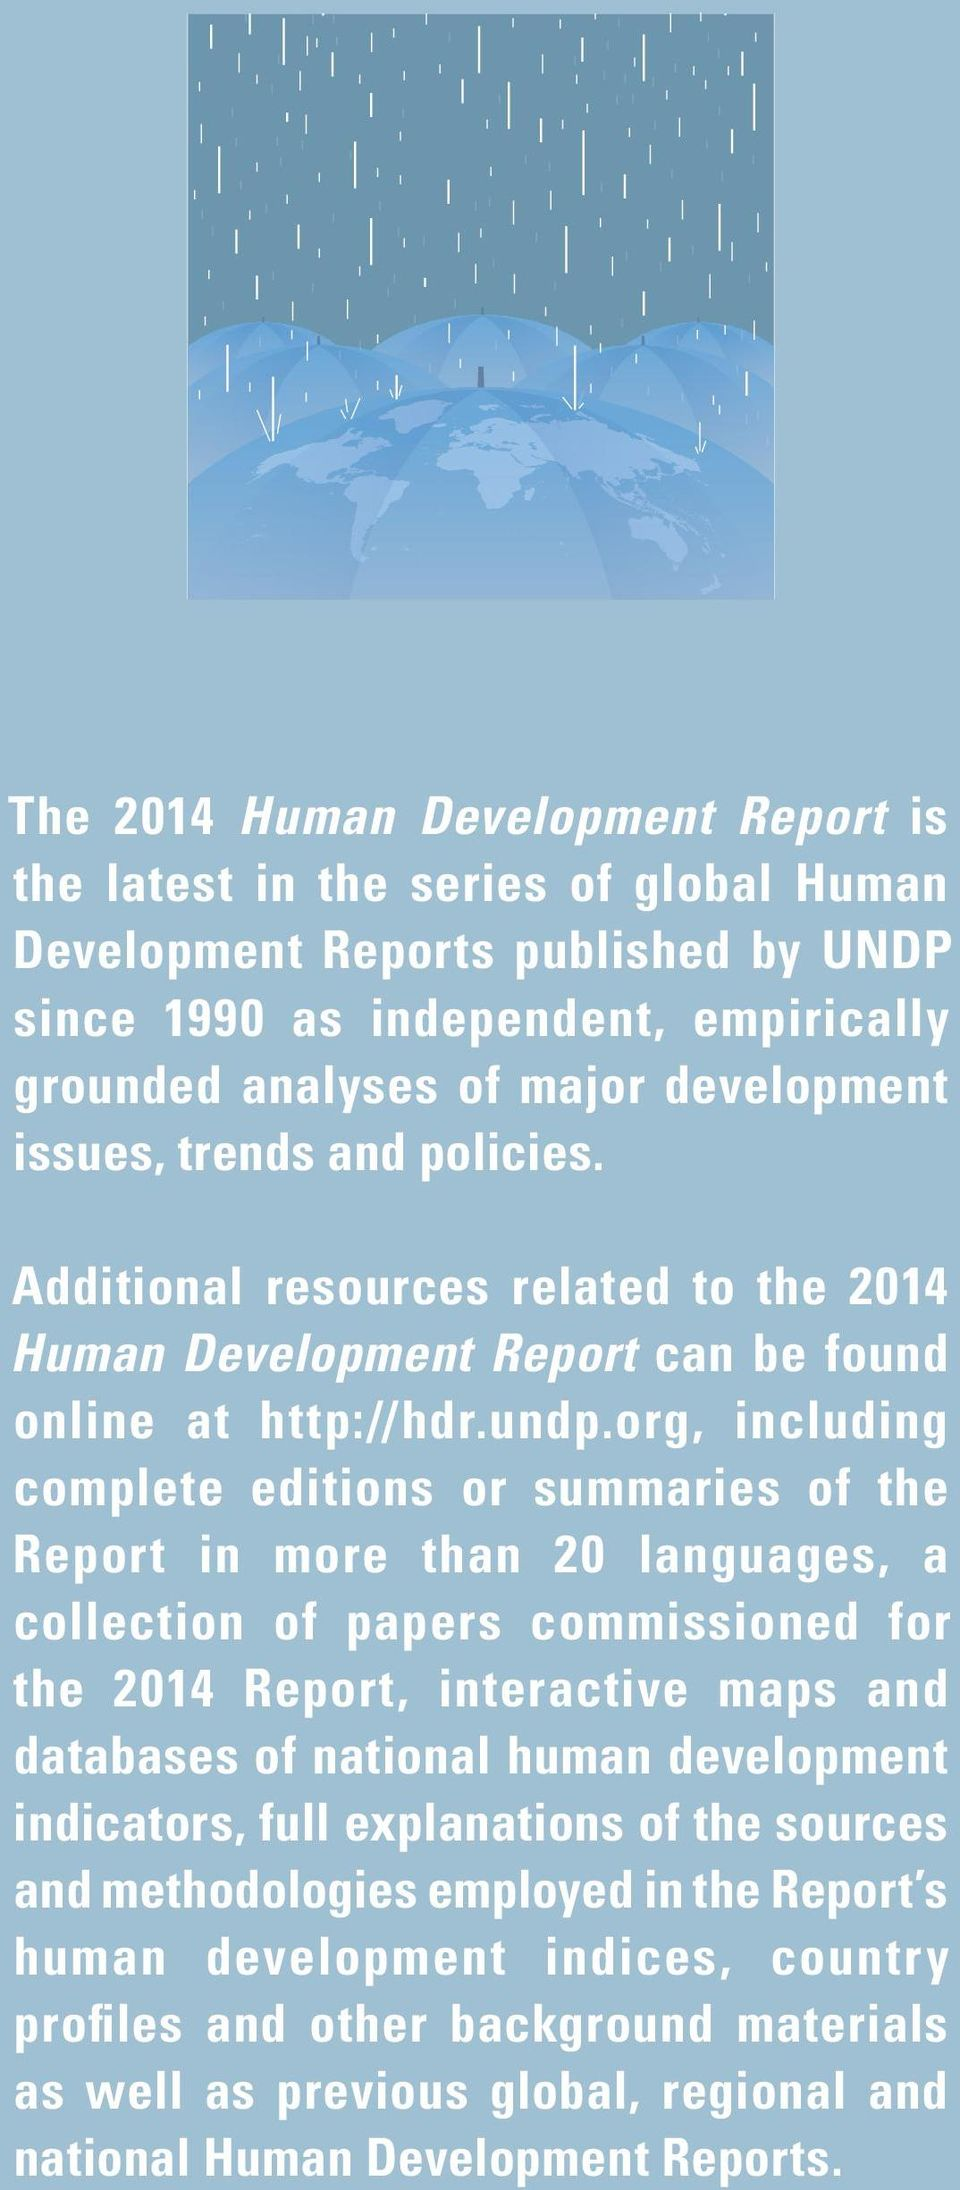 org, including complete editions or summaries of the Report in more than 20 languages, a collection of papers commissioned for the 2014 Report, interactive maps and databases of national human